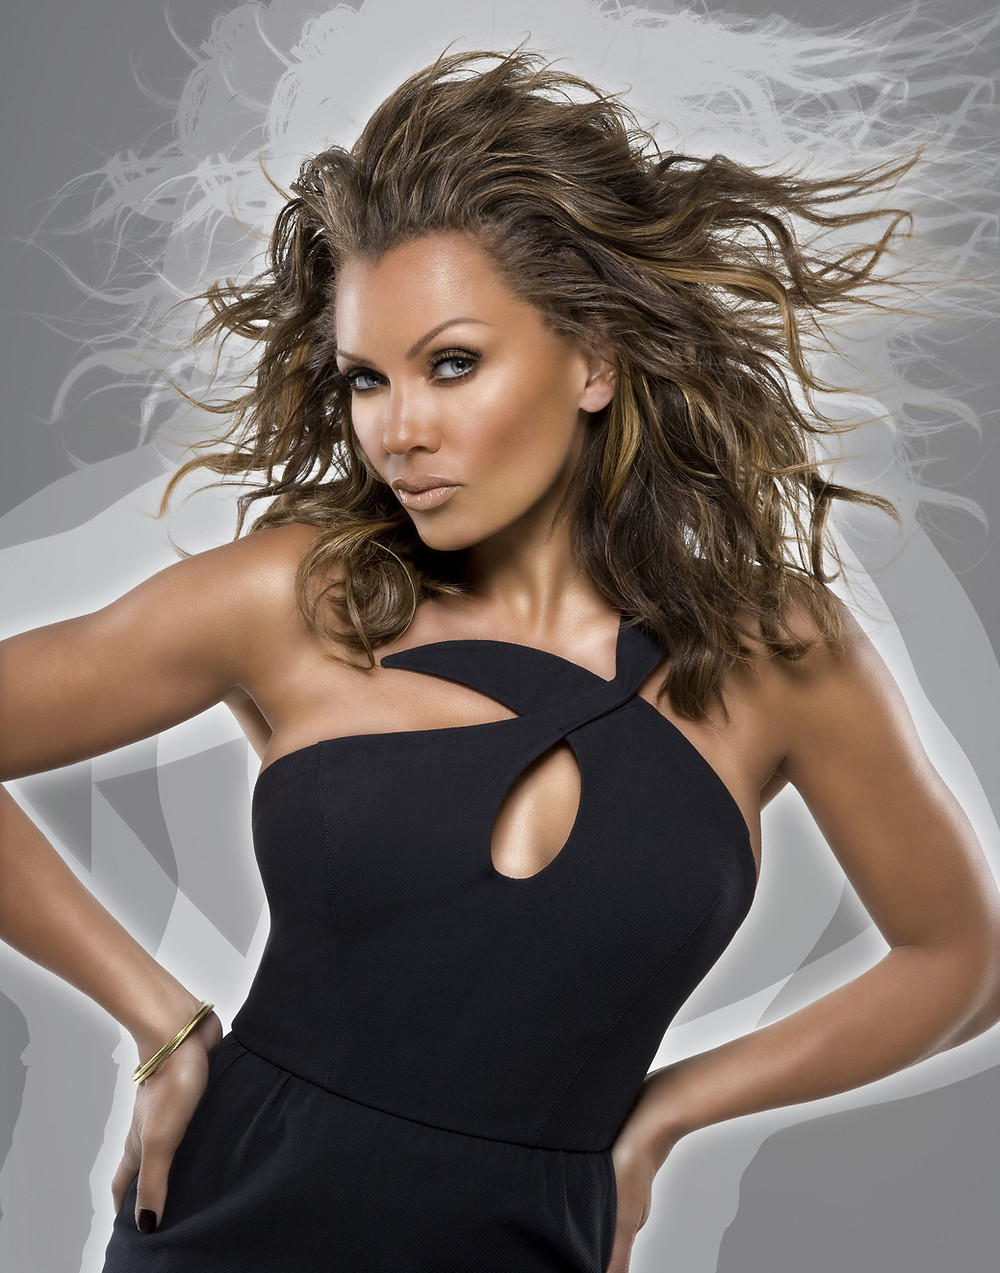 vanessa williams, musician, singer, actress, fashion, jewelry, gander group, casino